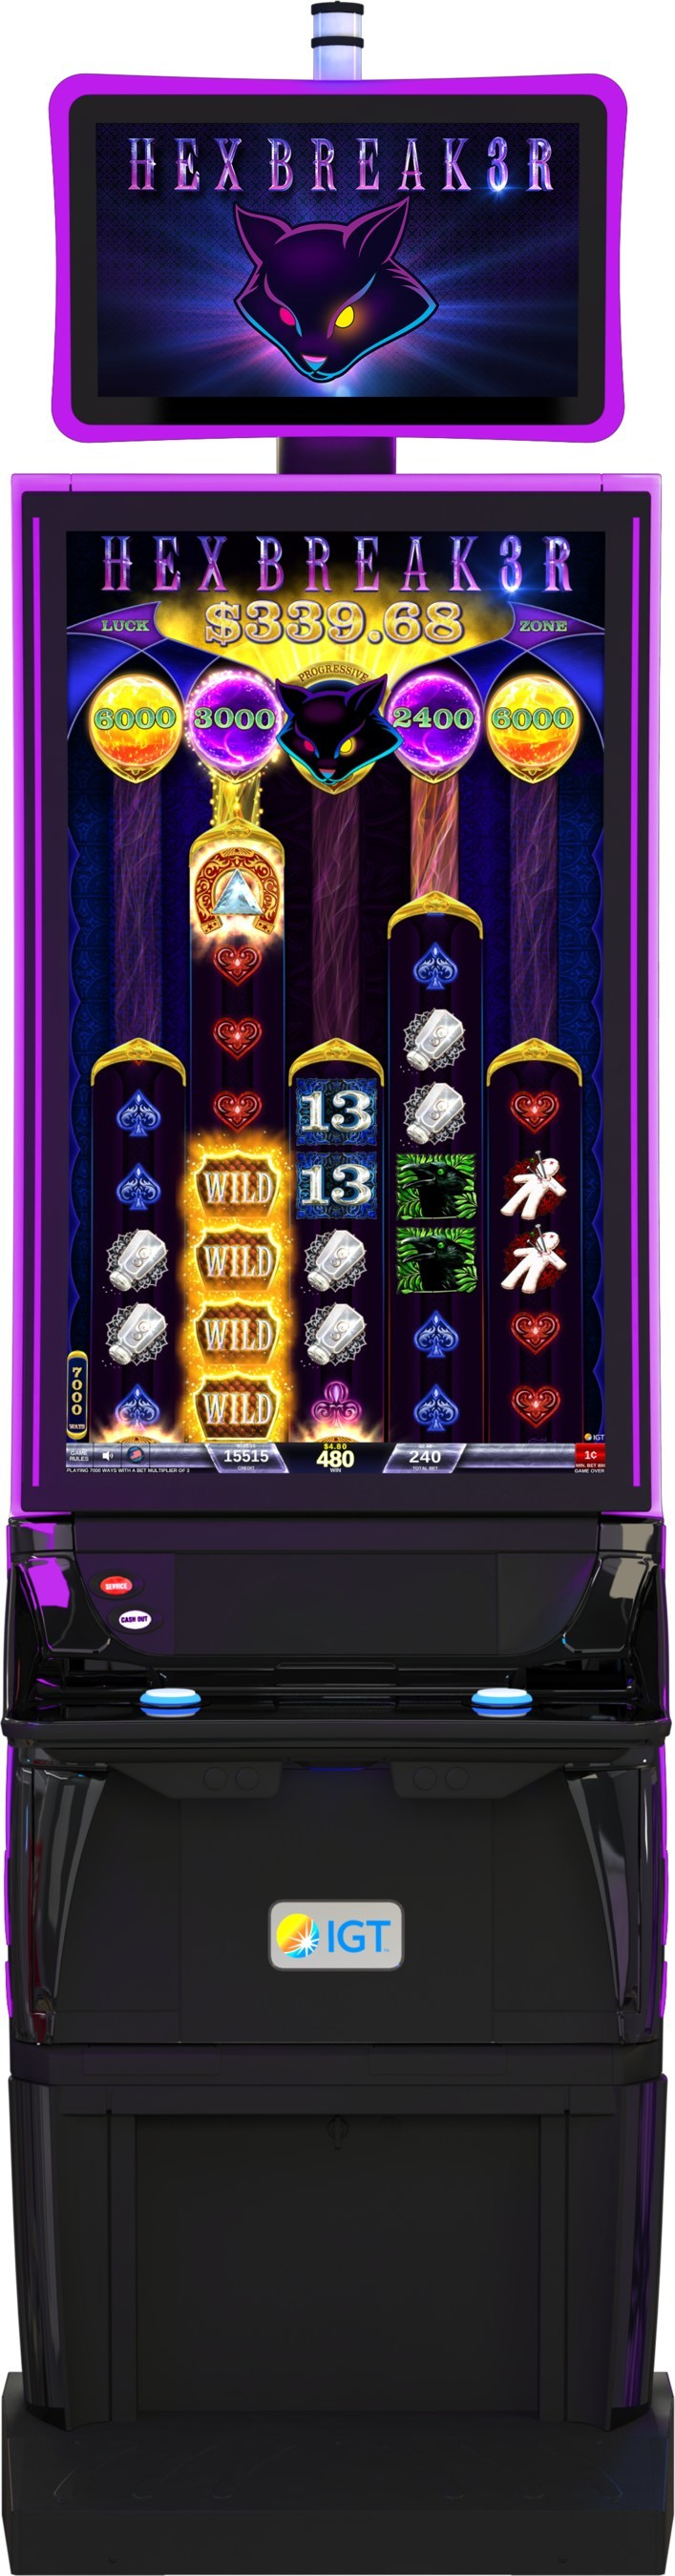 IGT's Hexbreaker 3 video slots on the CrystalCurve cabinet.